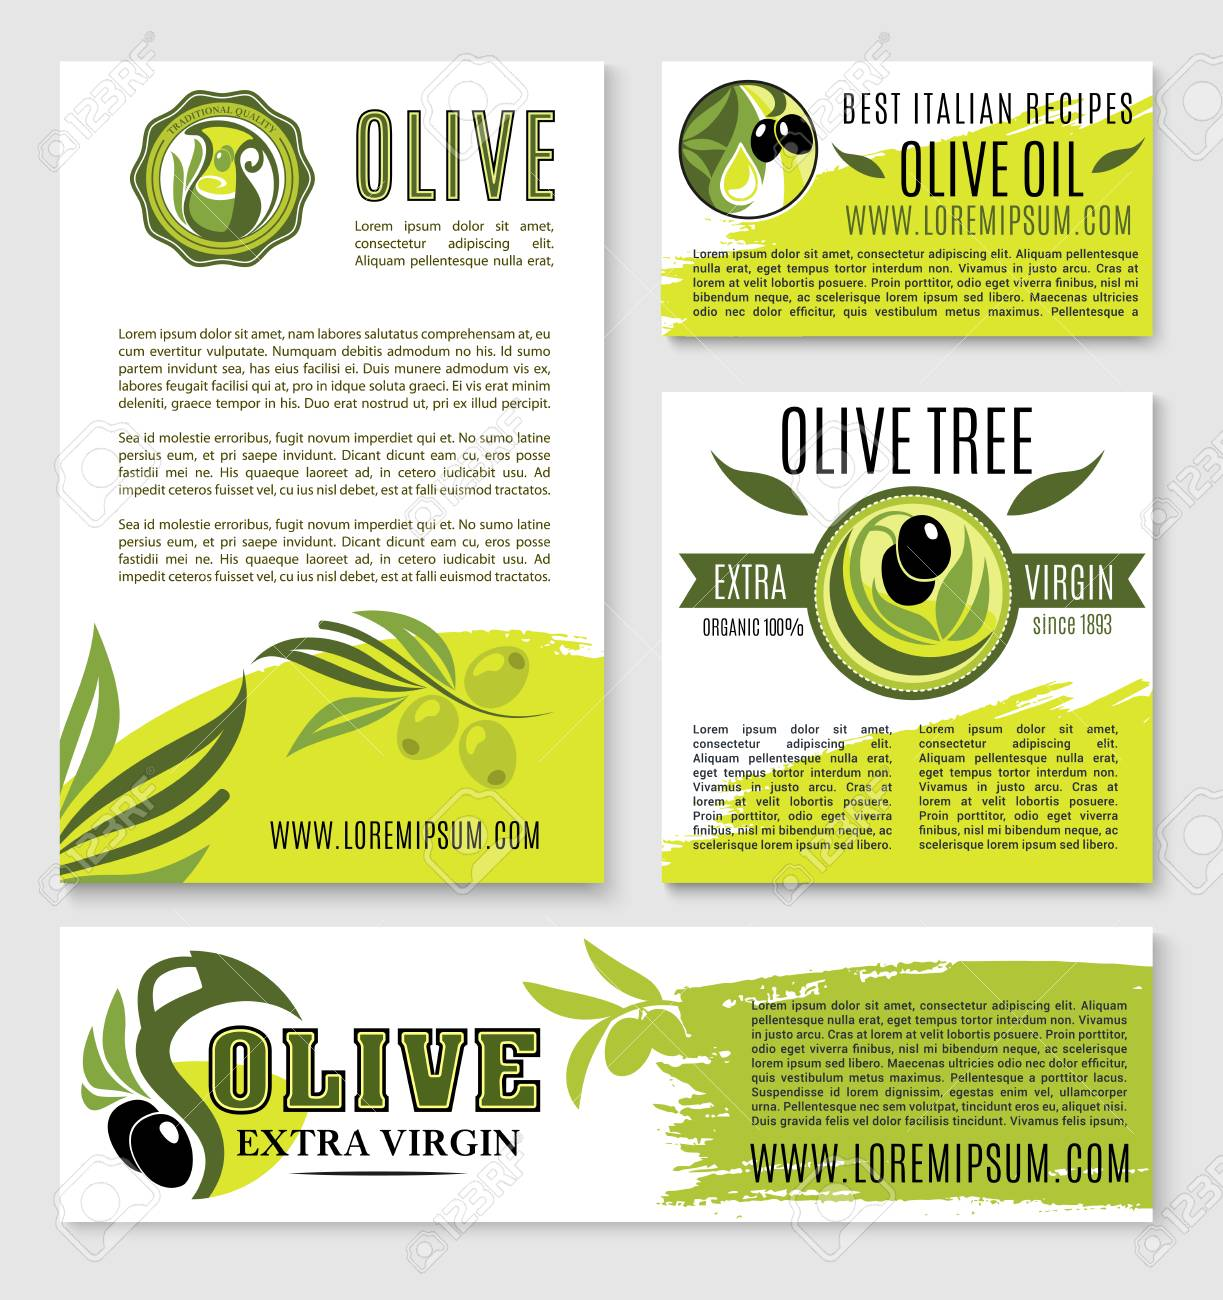 Olive oil nutrition and cooking recipes vector templates or posters..